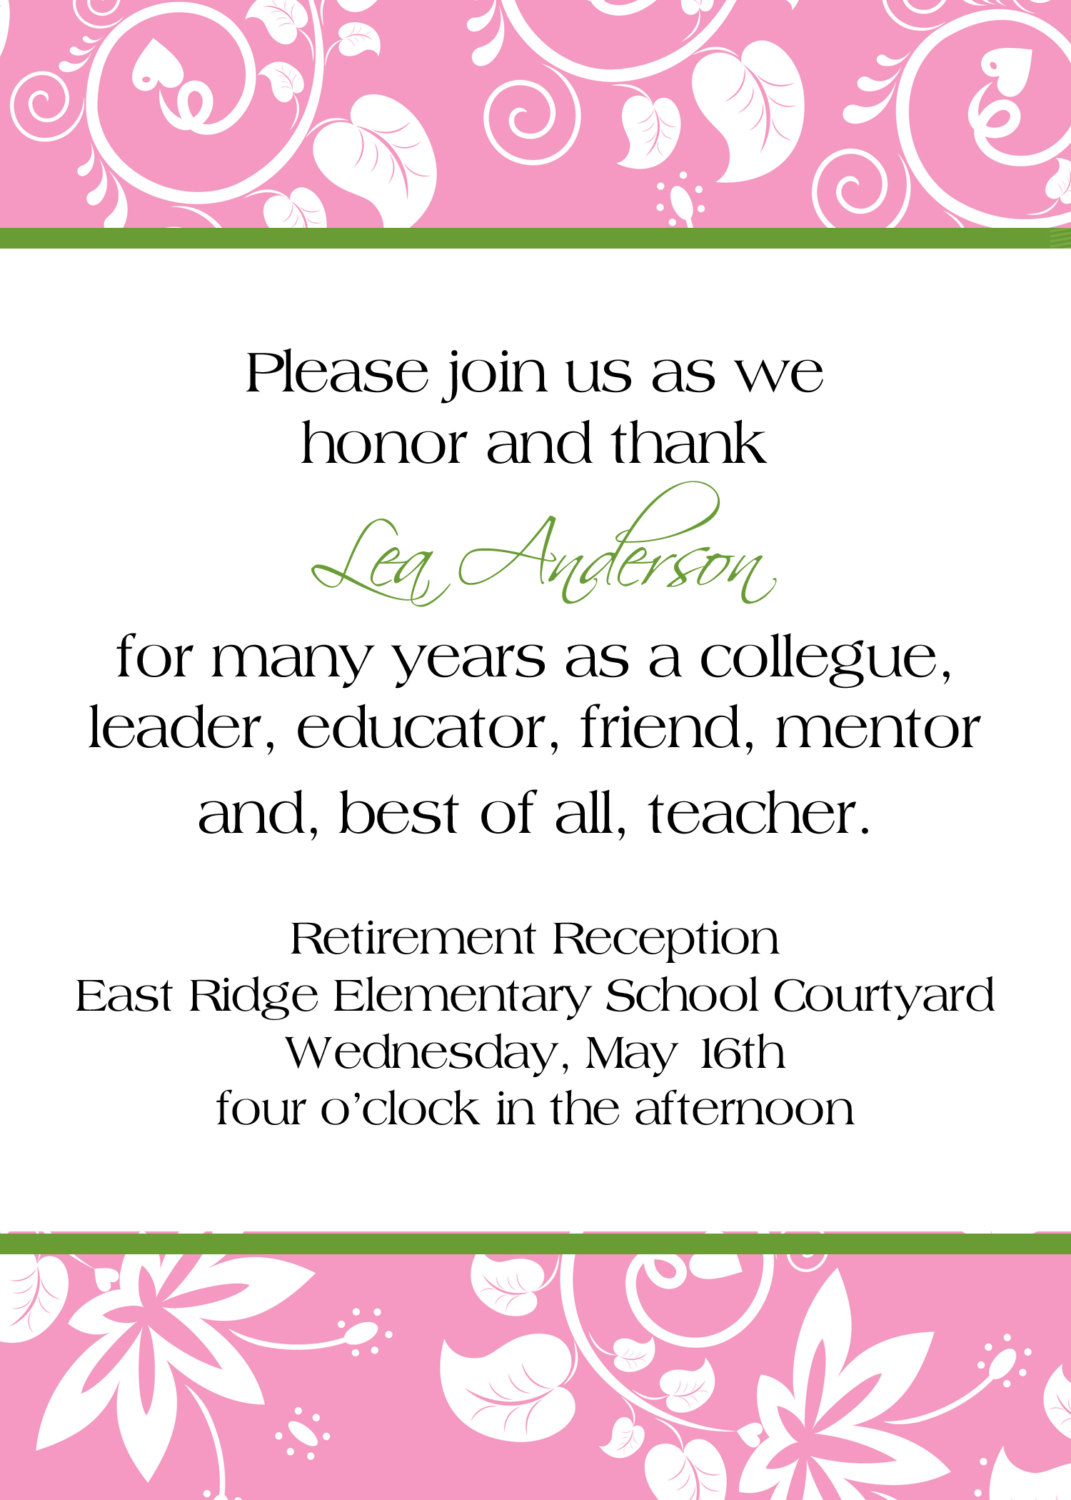 Retirement party invitations wording mickey mouse invitations invitation wording for retirement party invitation wording for retirement party stopboris Images